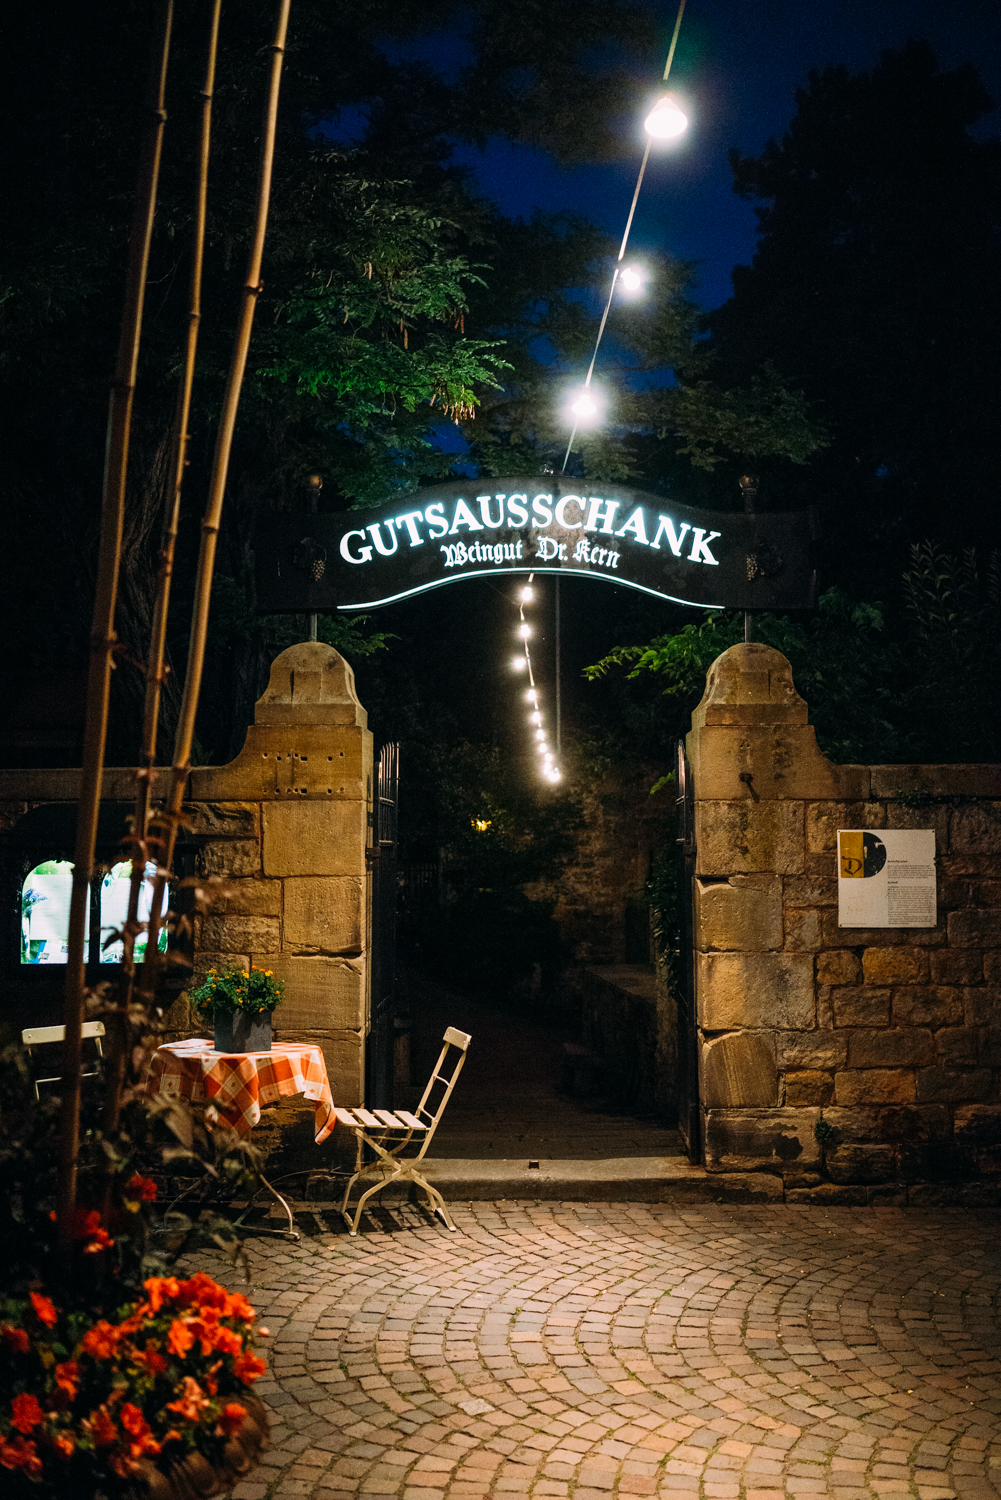 Entrance to a restaurant.